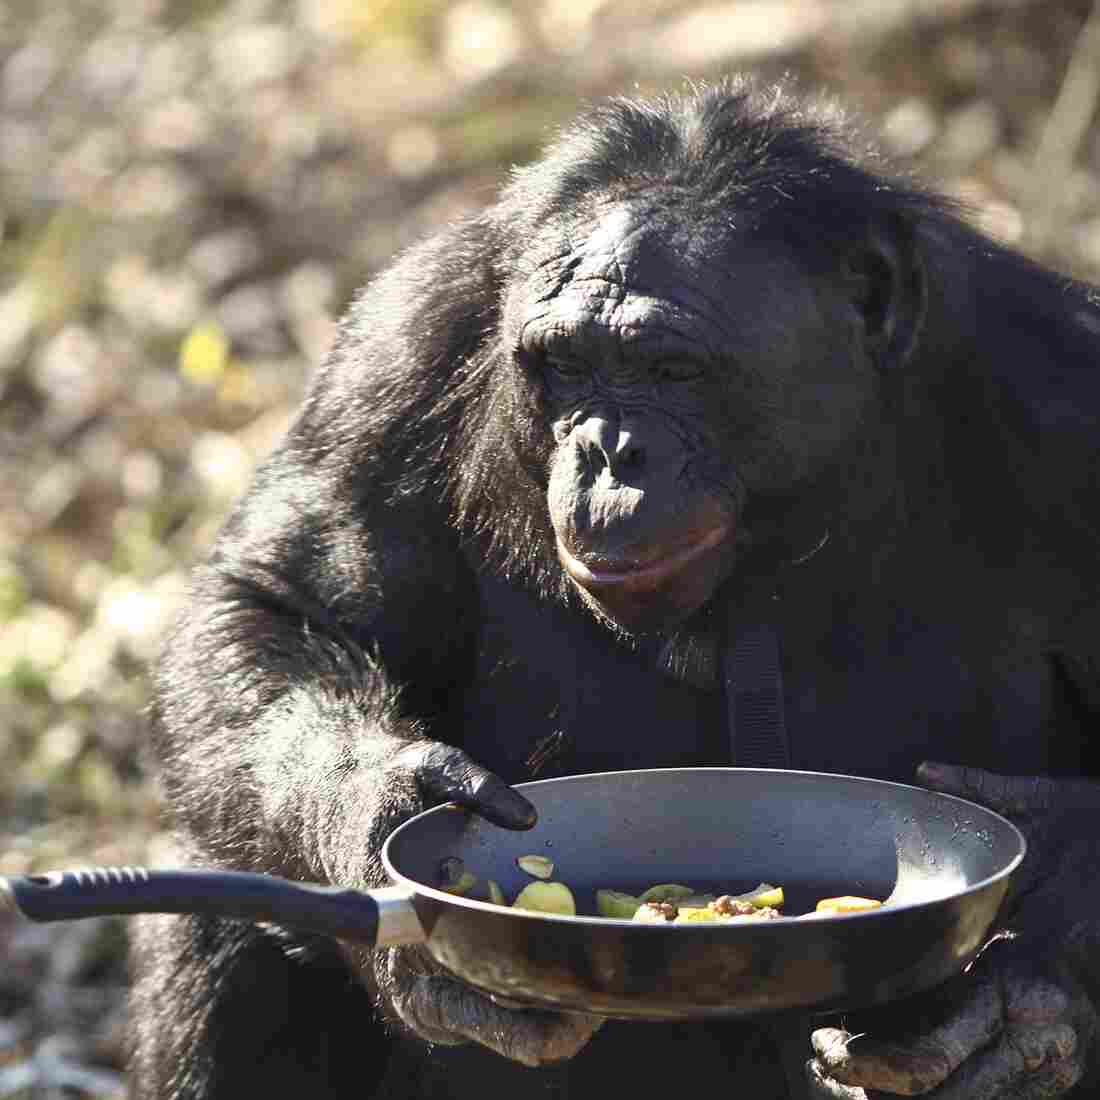 Chimps Are No Chumps: Give Them An Oven, They'll Learn To Cook